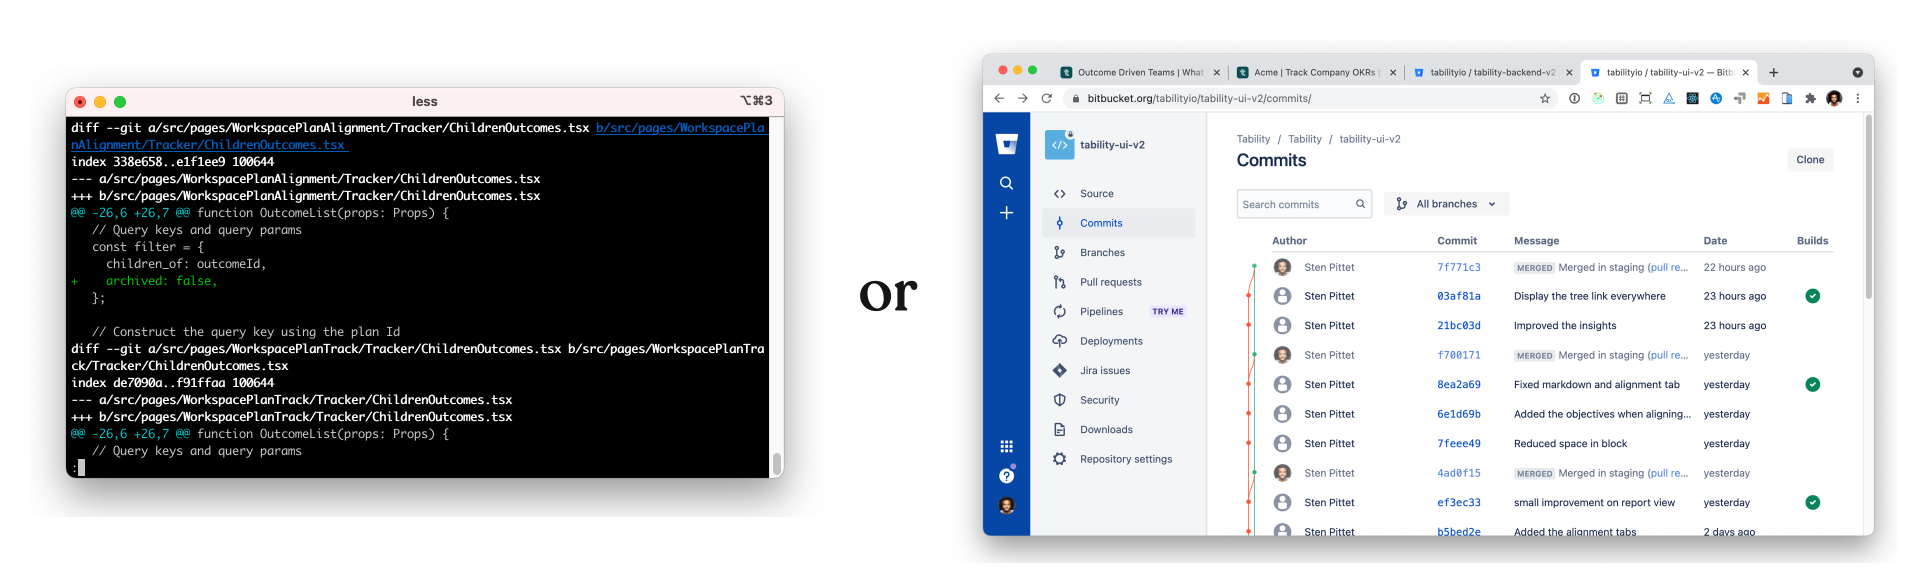 This is a picture showing a Git in a terminal vs. using Bitbucket.